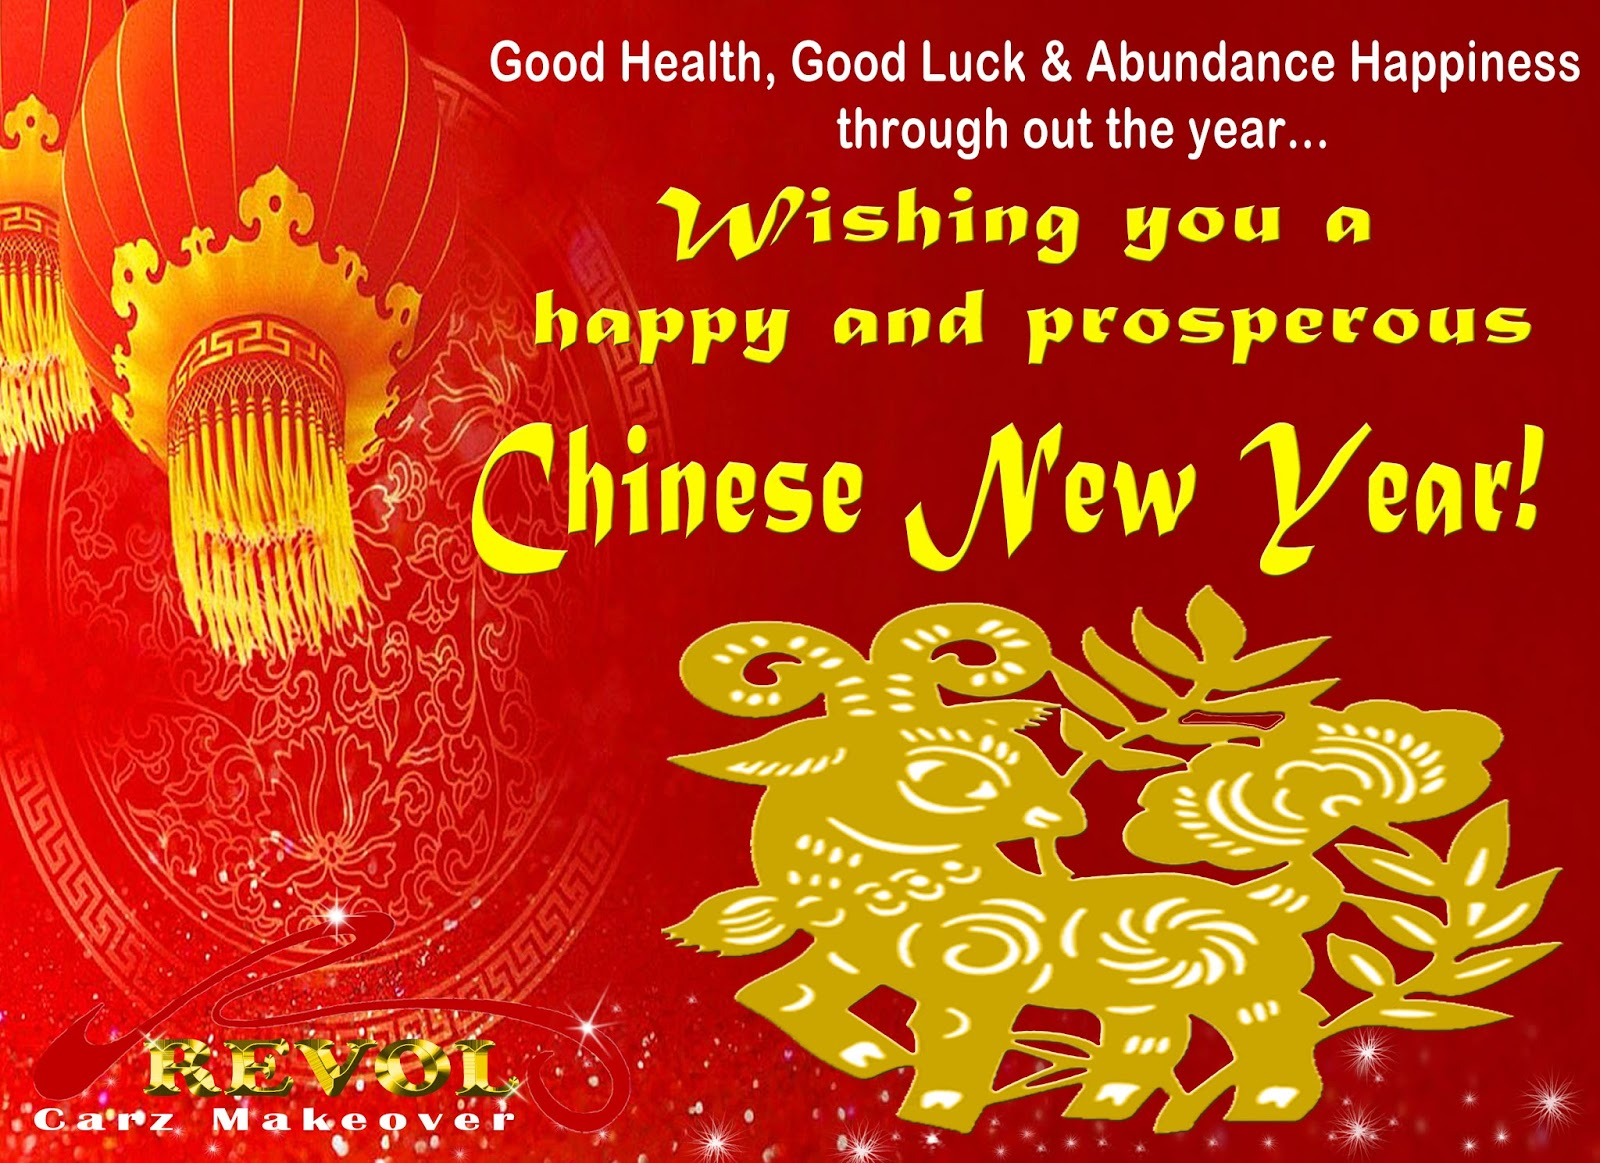 Chinese new year messages 2018 new year sms wishes quotes w xing wn n 12 yu 31 r cng xiw 11591201 zhyng w ji ky yu yg wid de jij y 2016 nin yu yg jngrn de kish de zhnggu nngl m4hsunfo